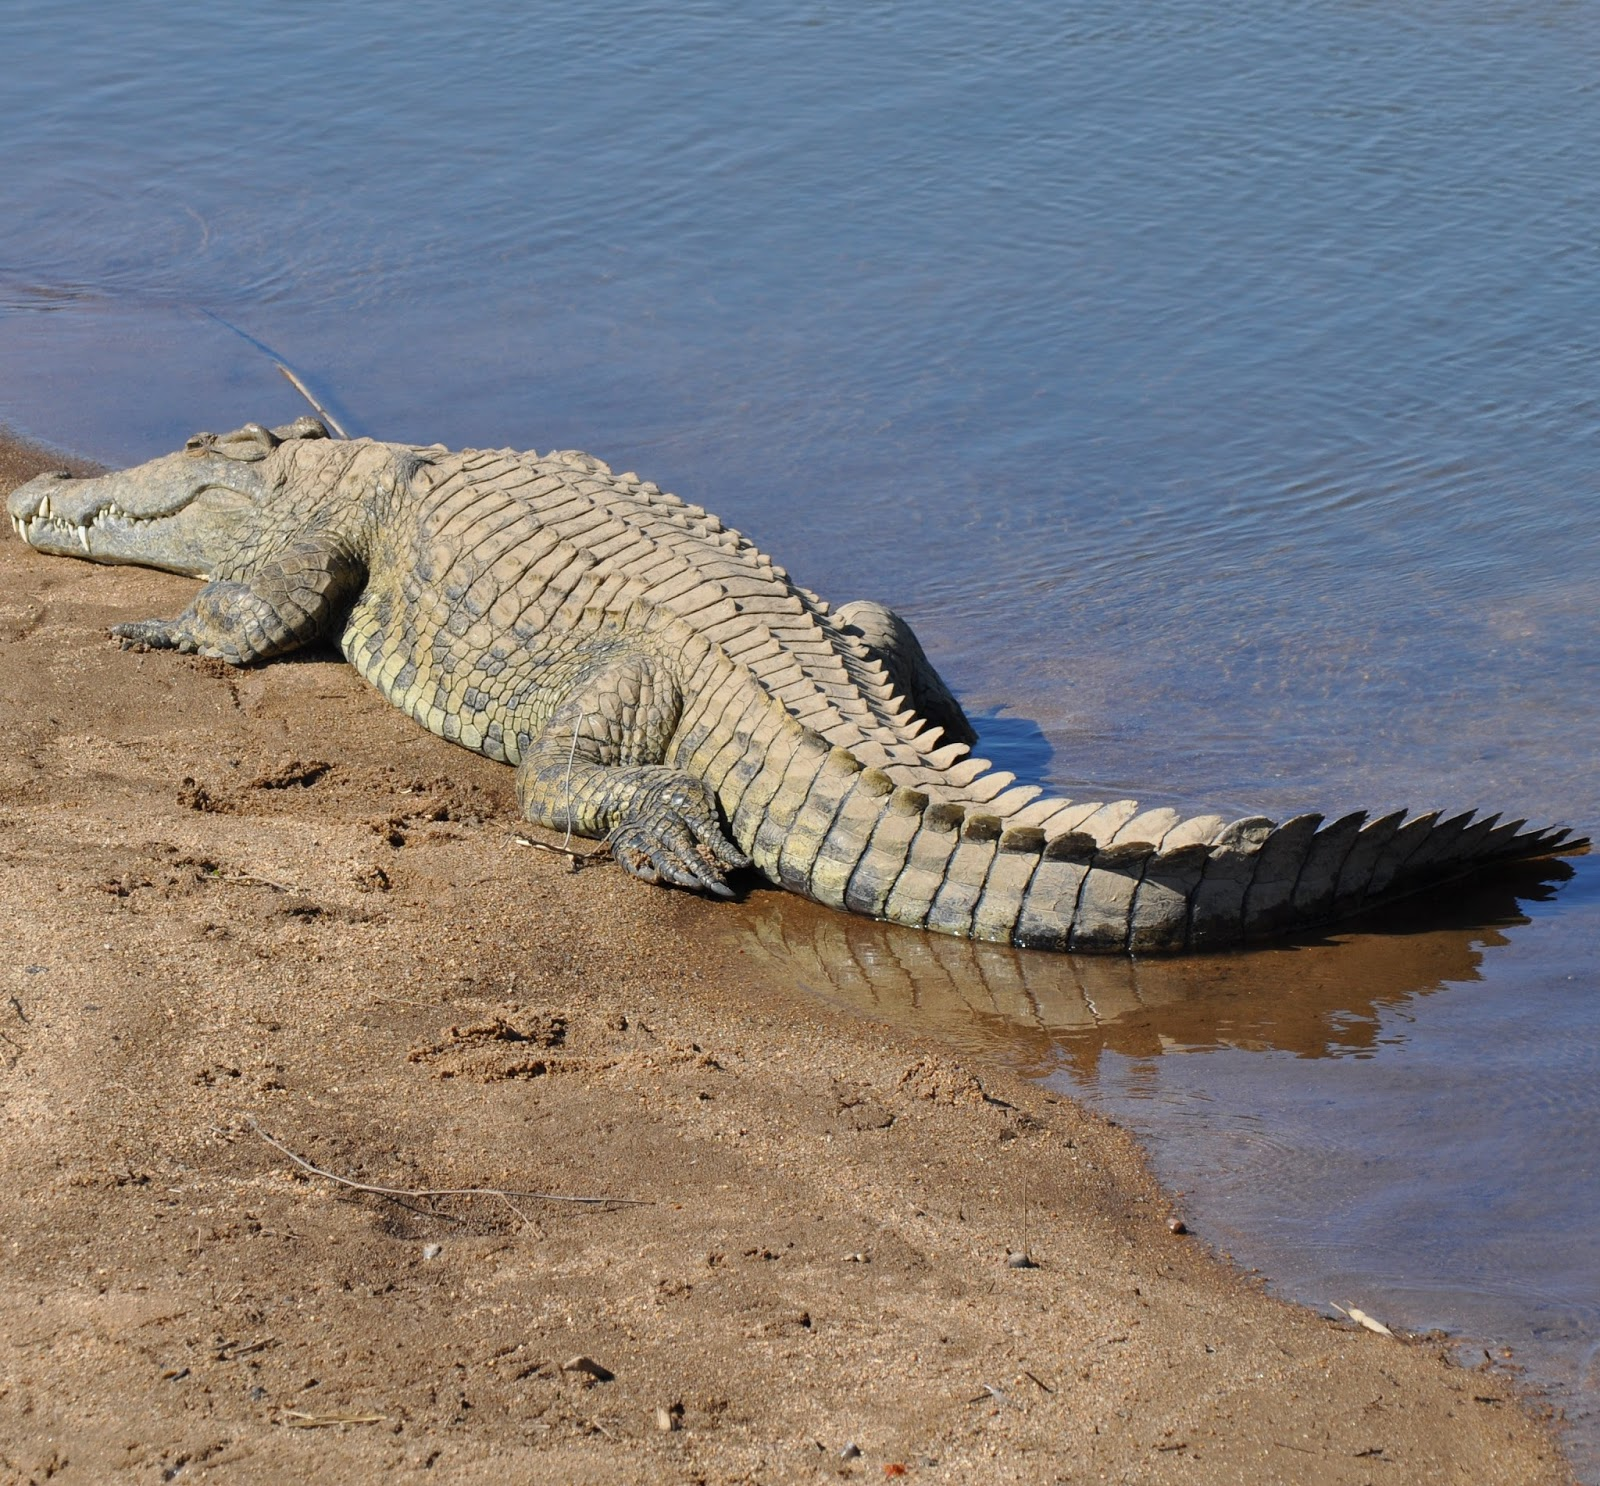 A crocodile near a lake.